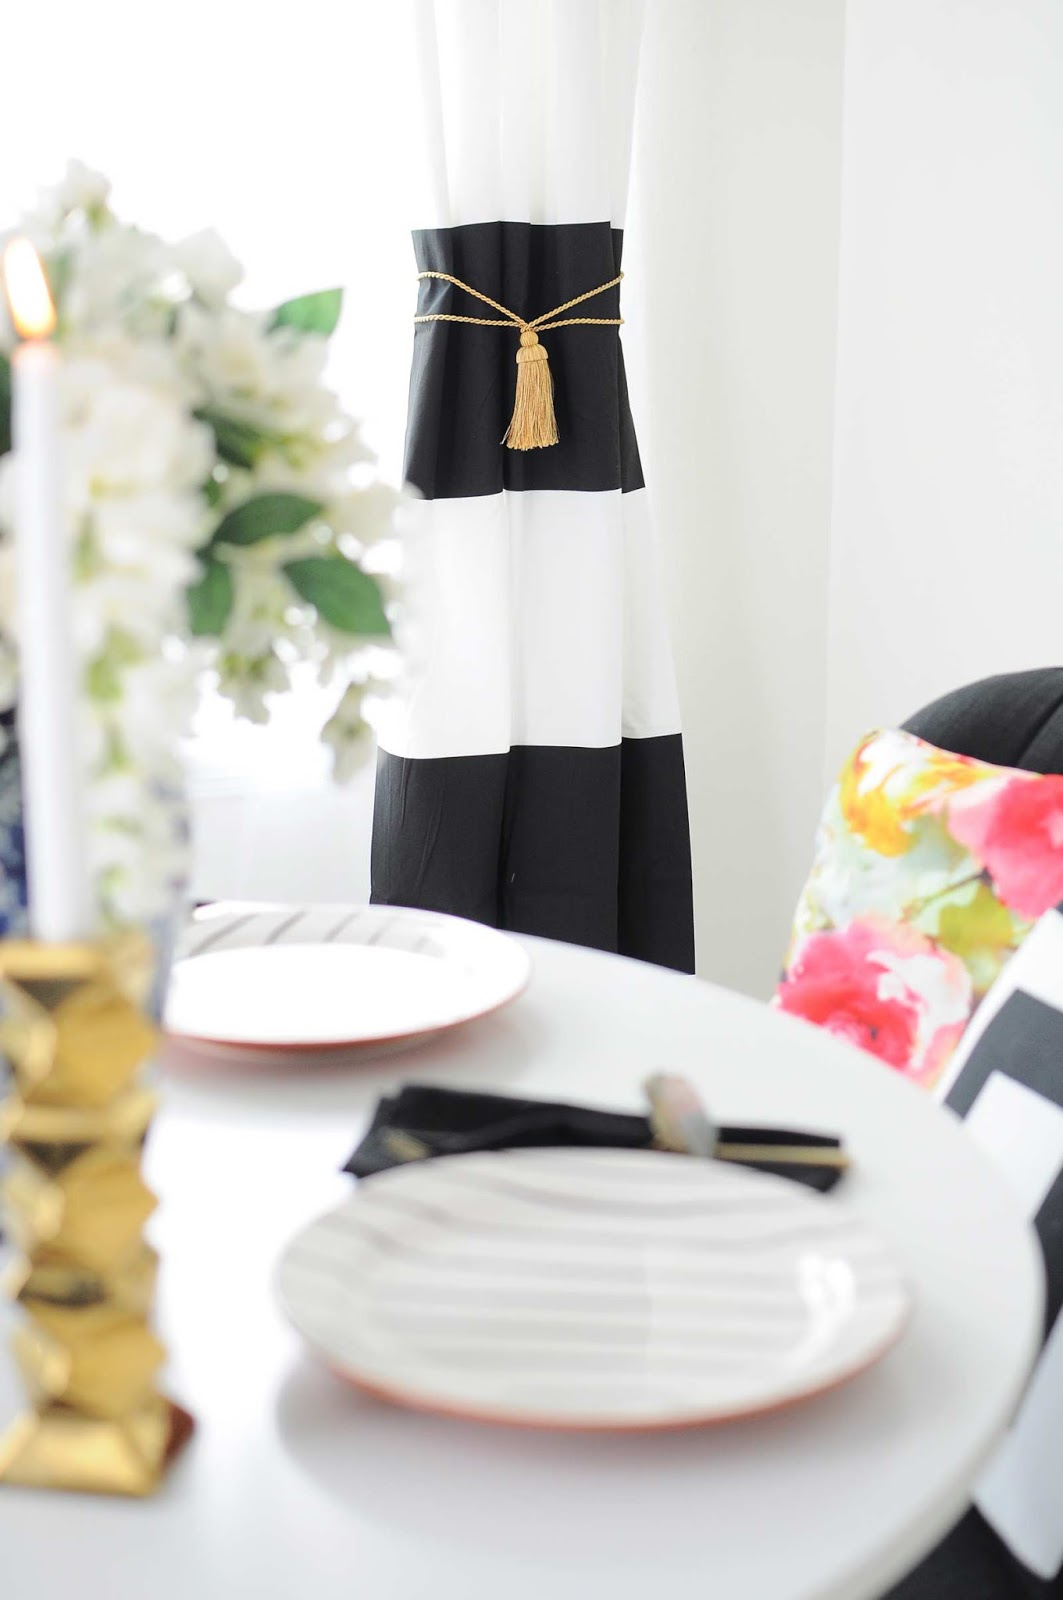 Black and white striped curtains with gold tassels in a small dining room space makeover.